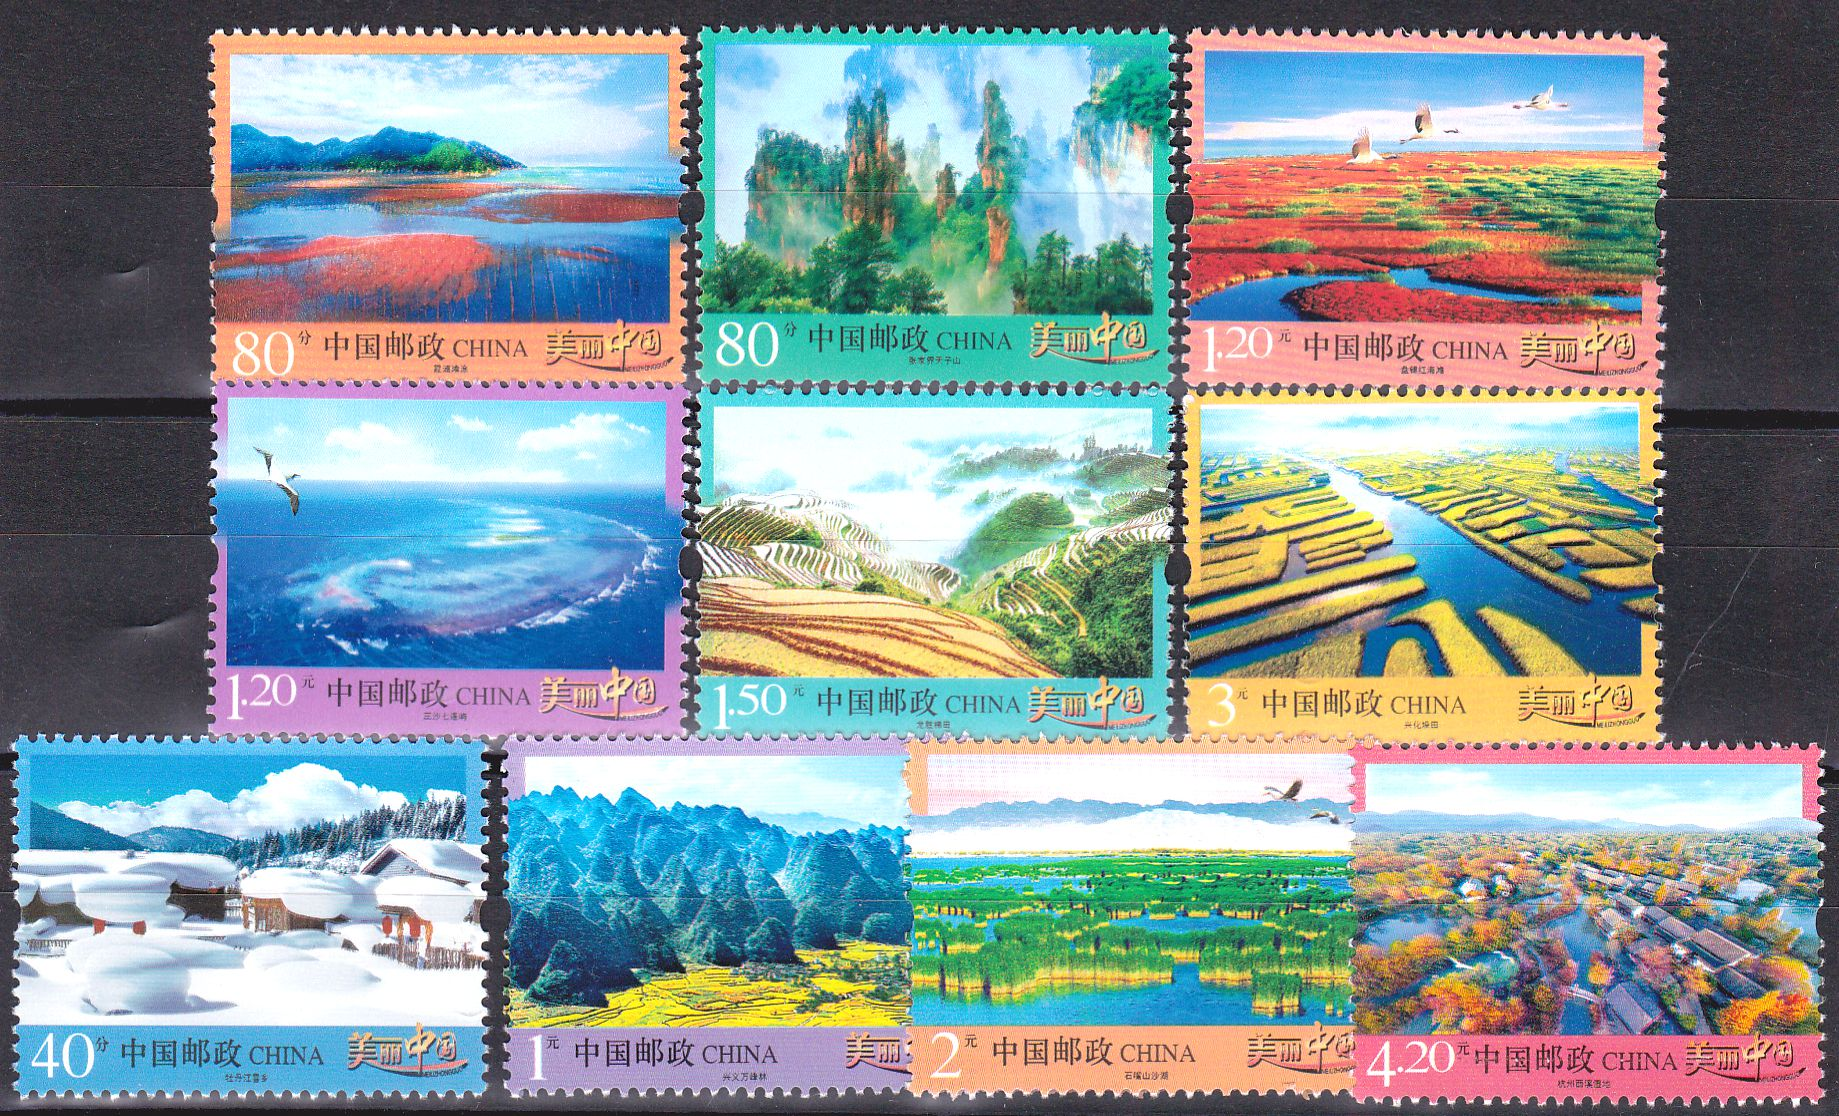 M2701, Beautiful China Definitive Stamps, 10 Pcs, 2013-2016